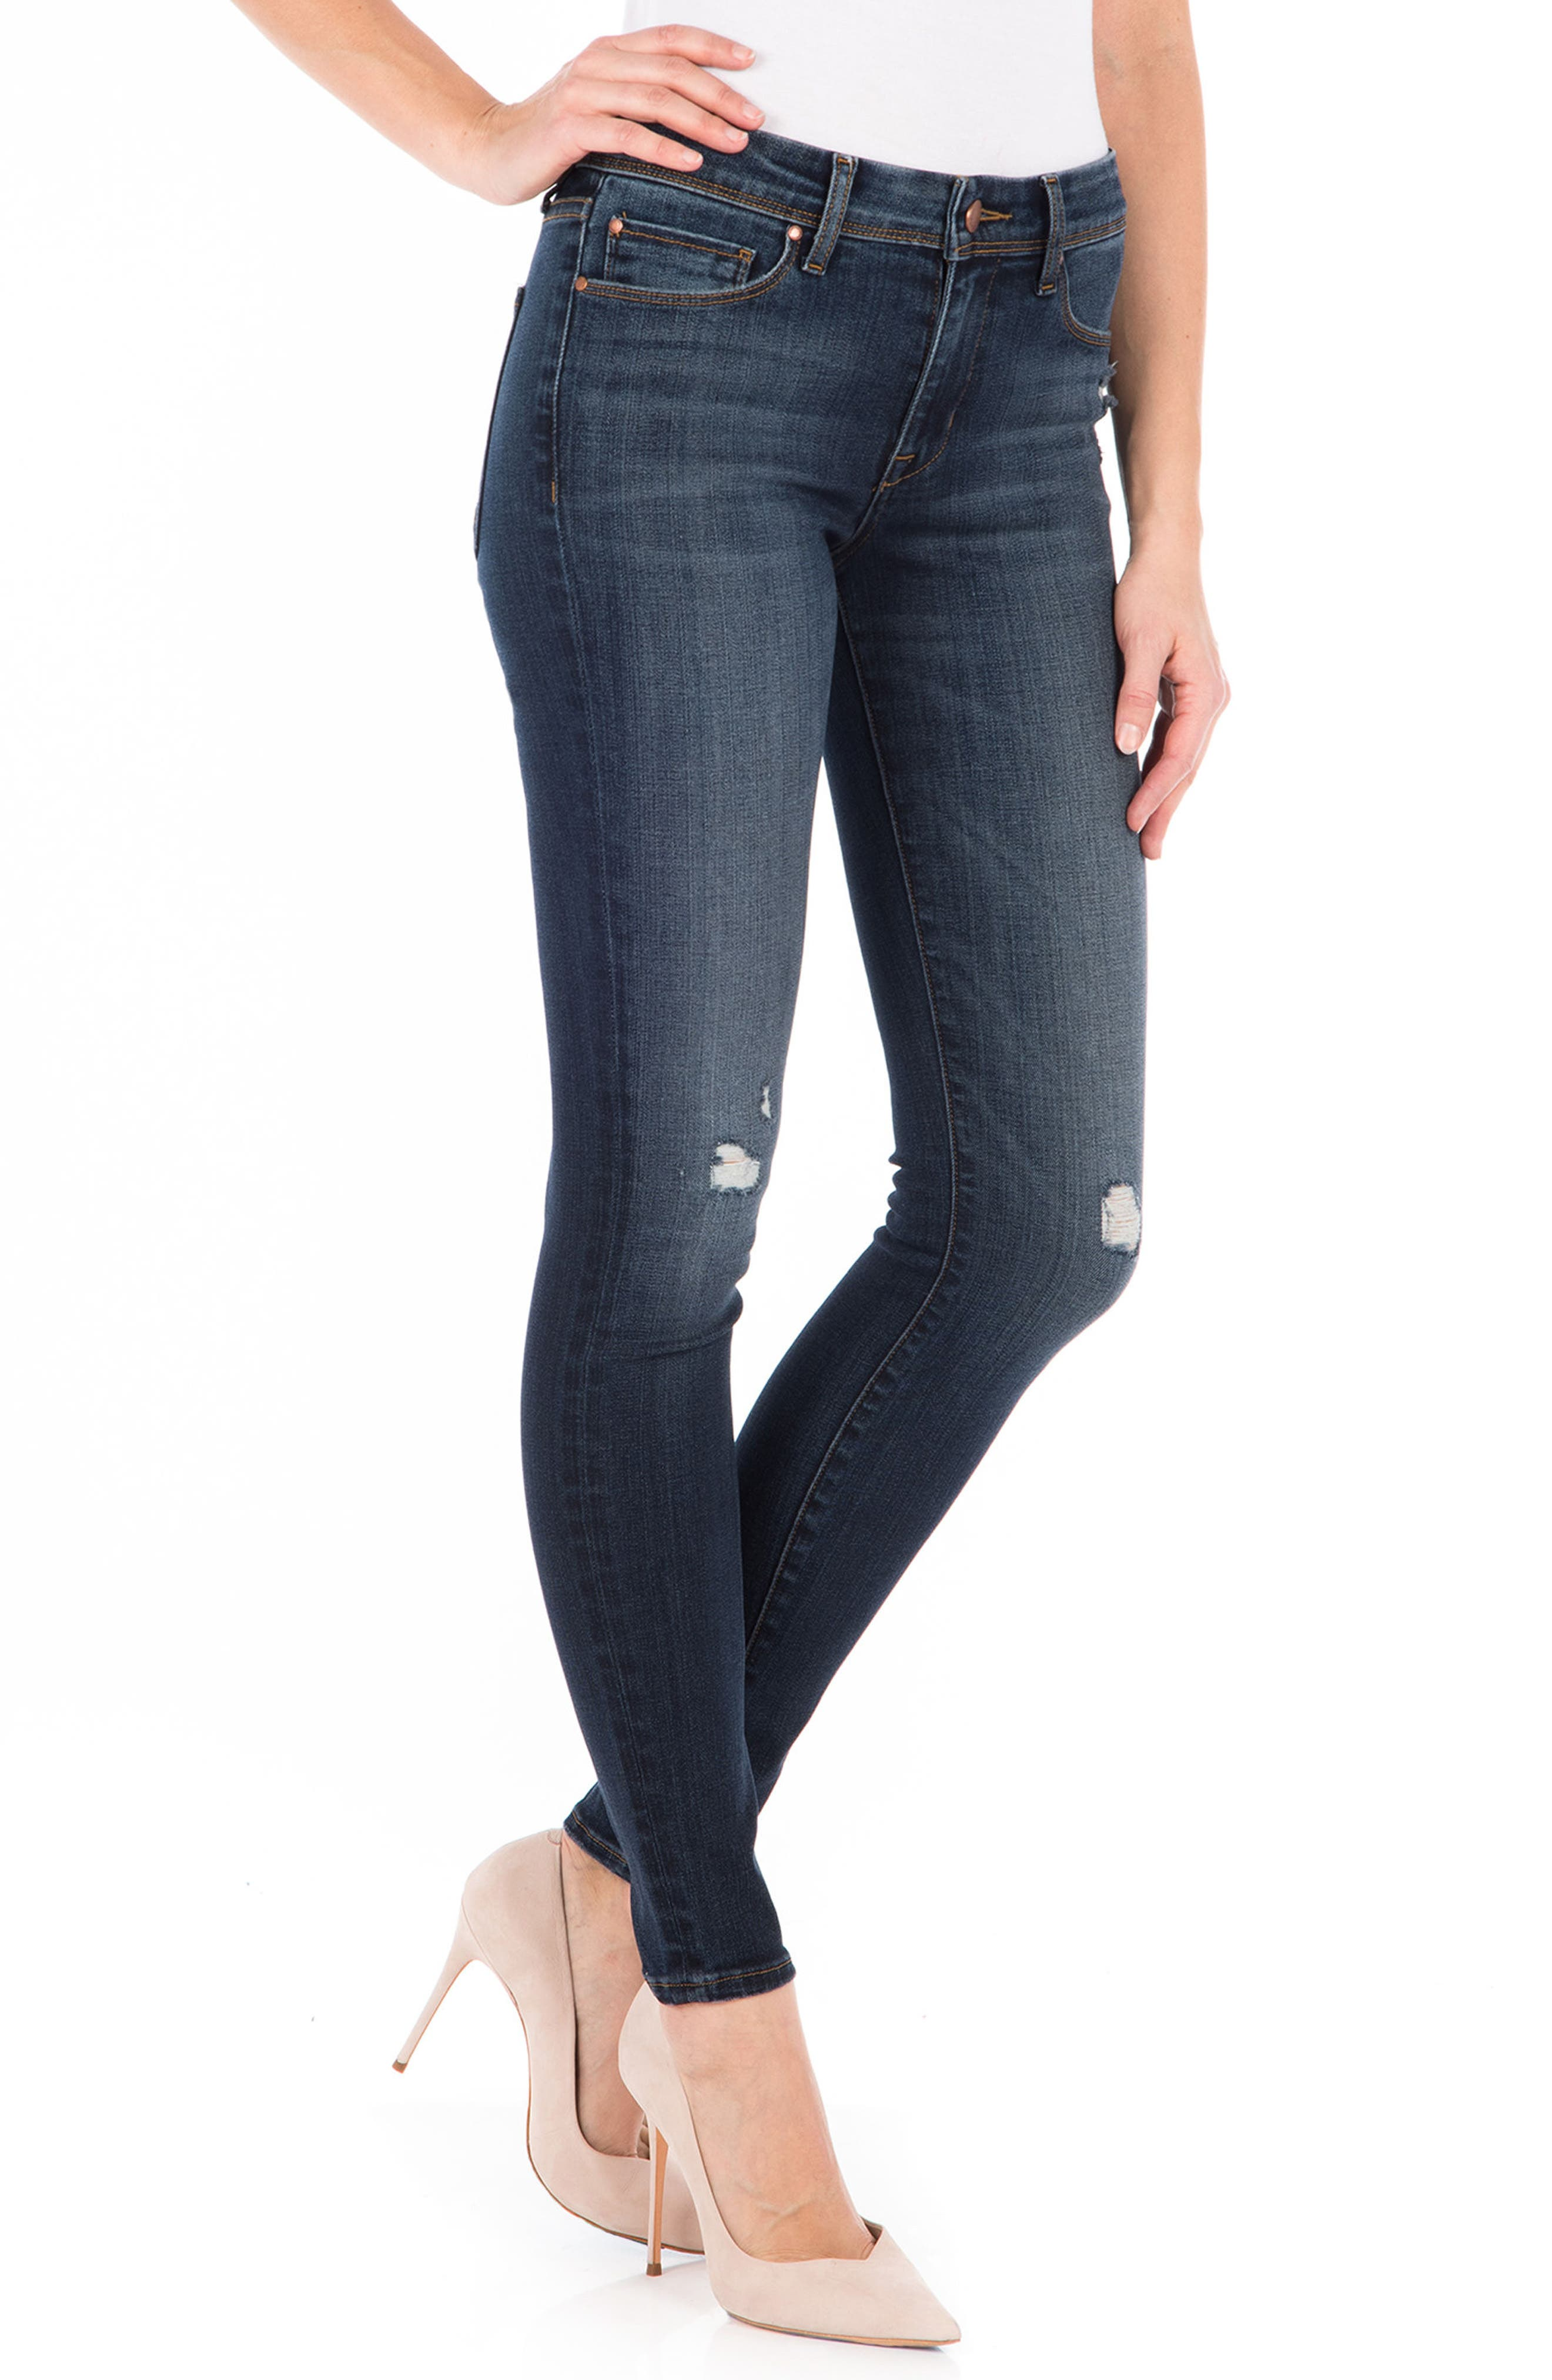 Belvedere Skinny Jeans,                             Alternate thumbnail 3, color,                             400